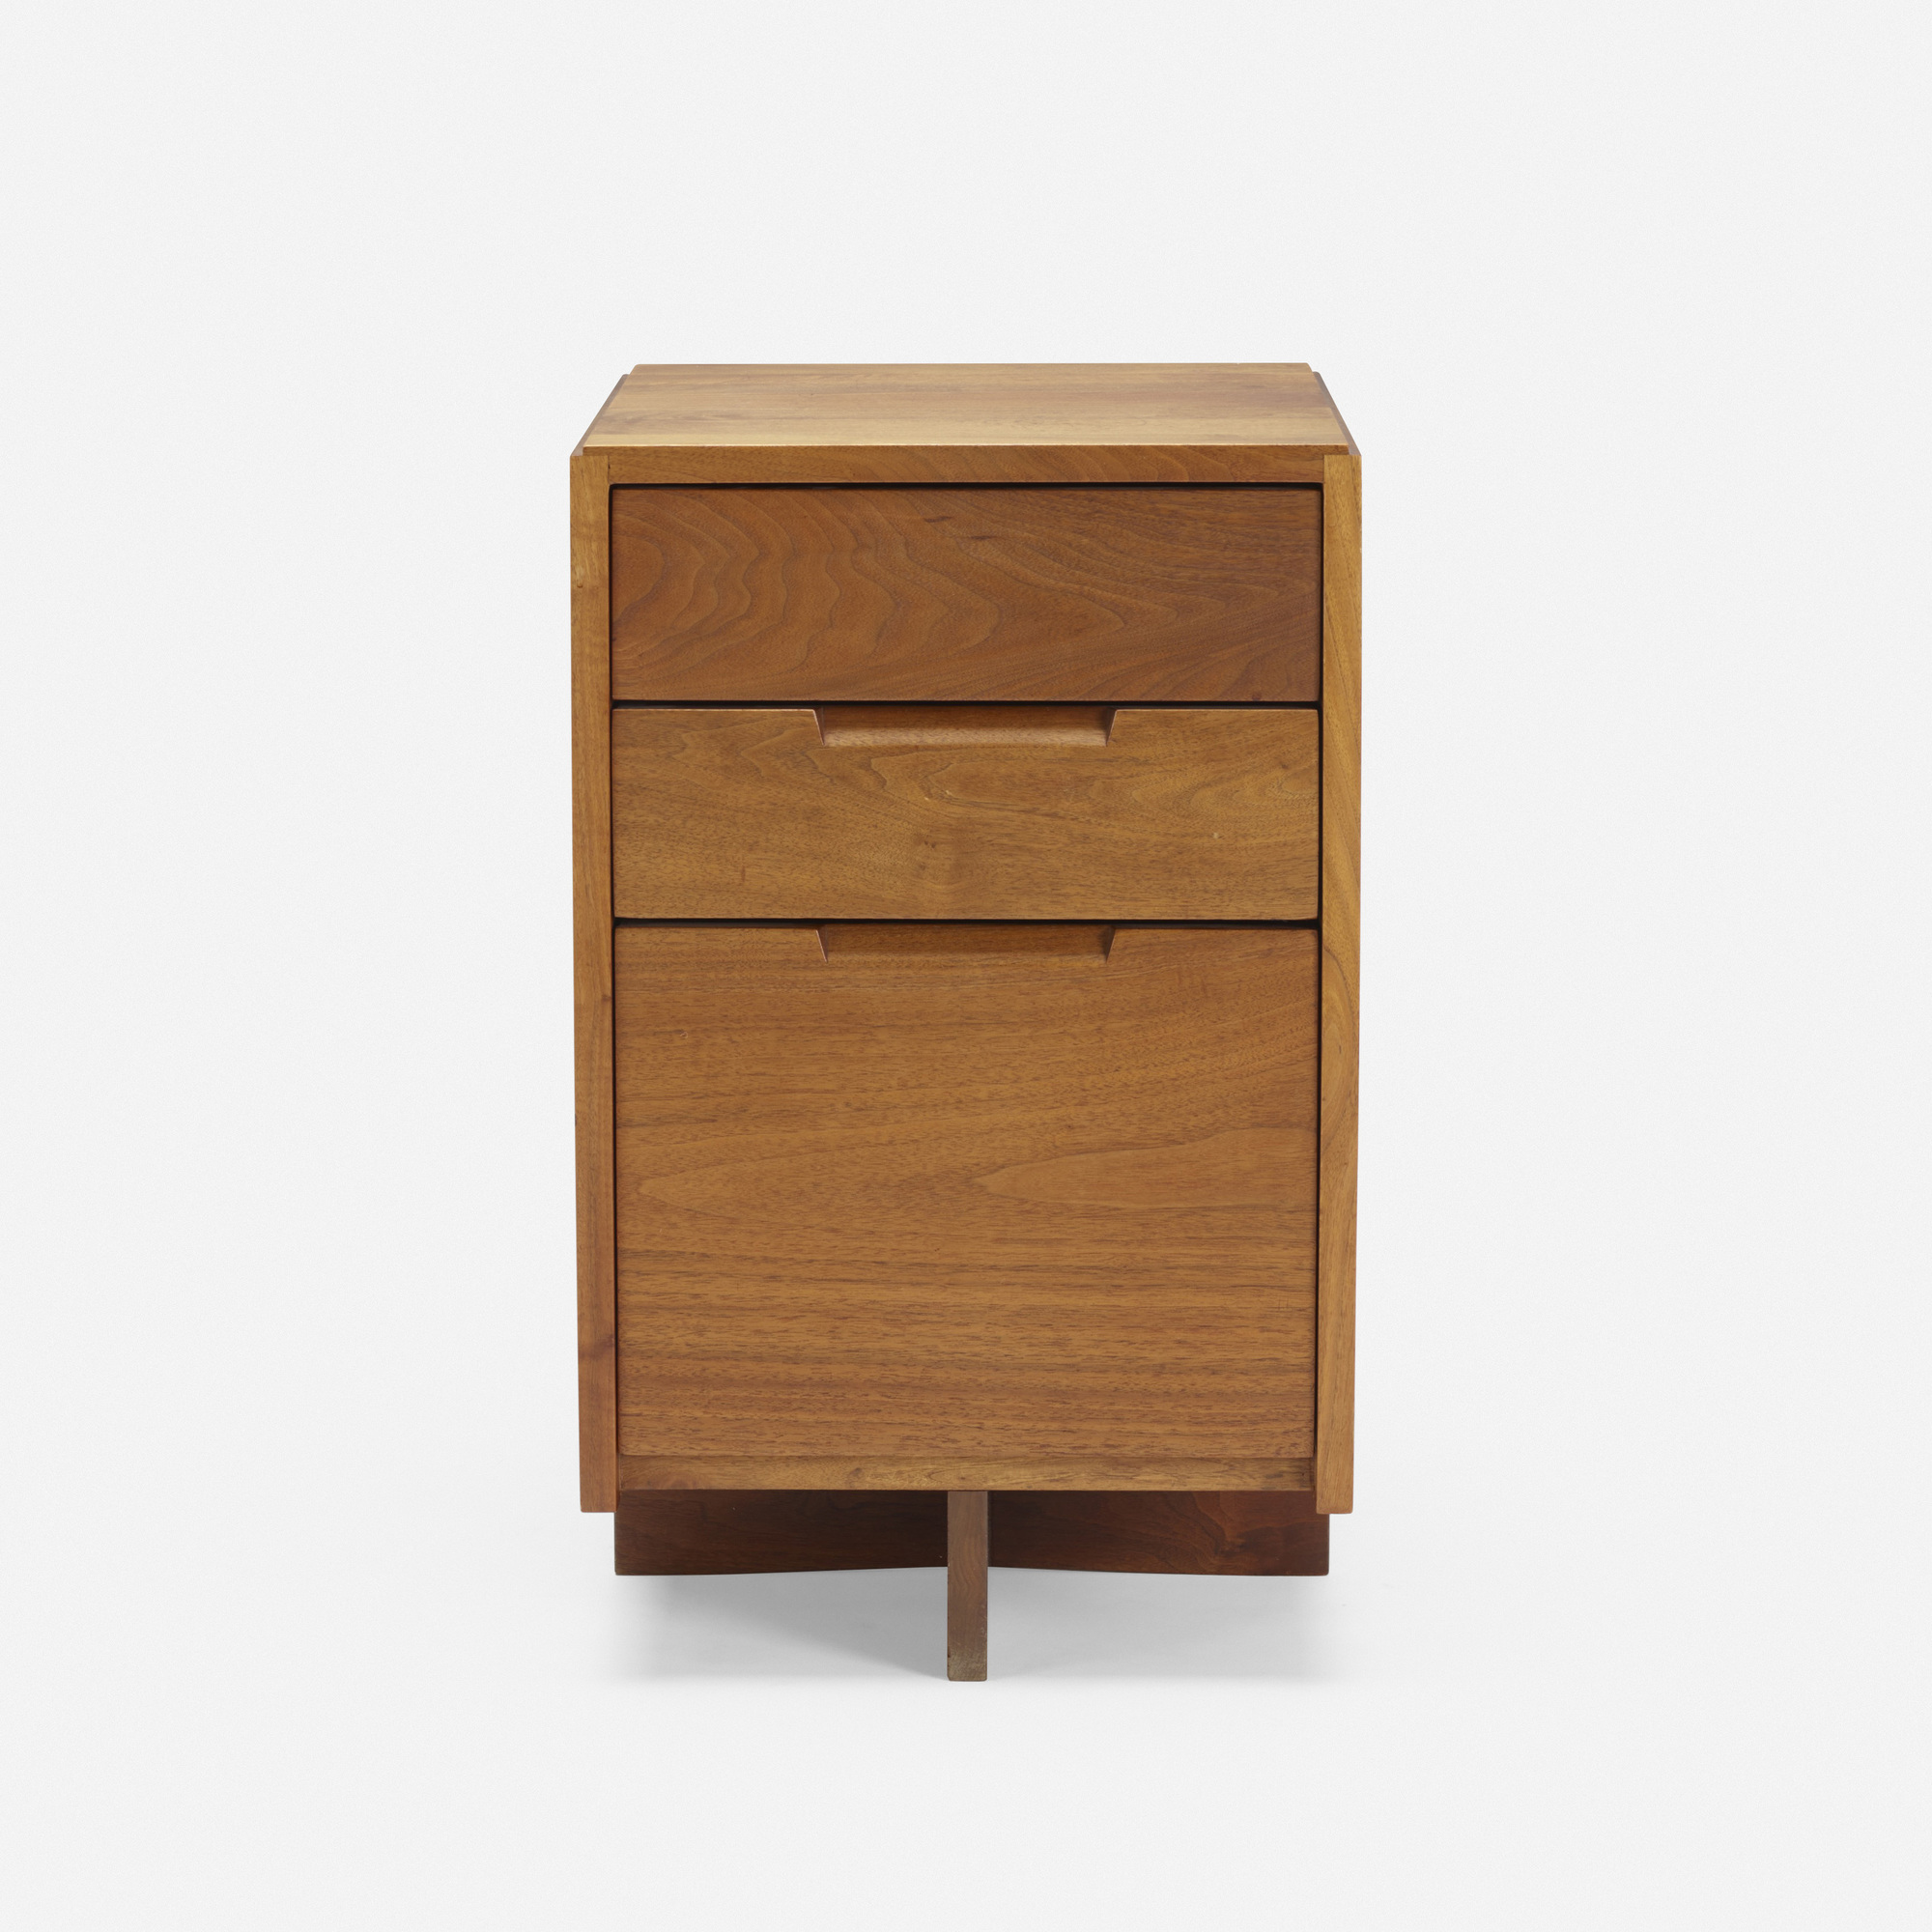 112: George Nakashima / nightstand (2 of 3)